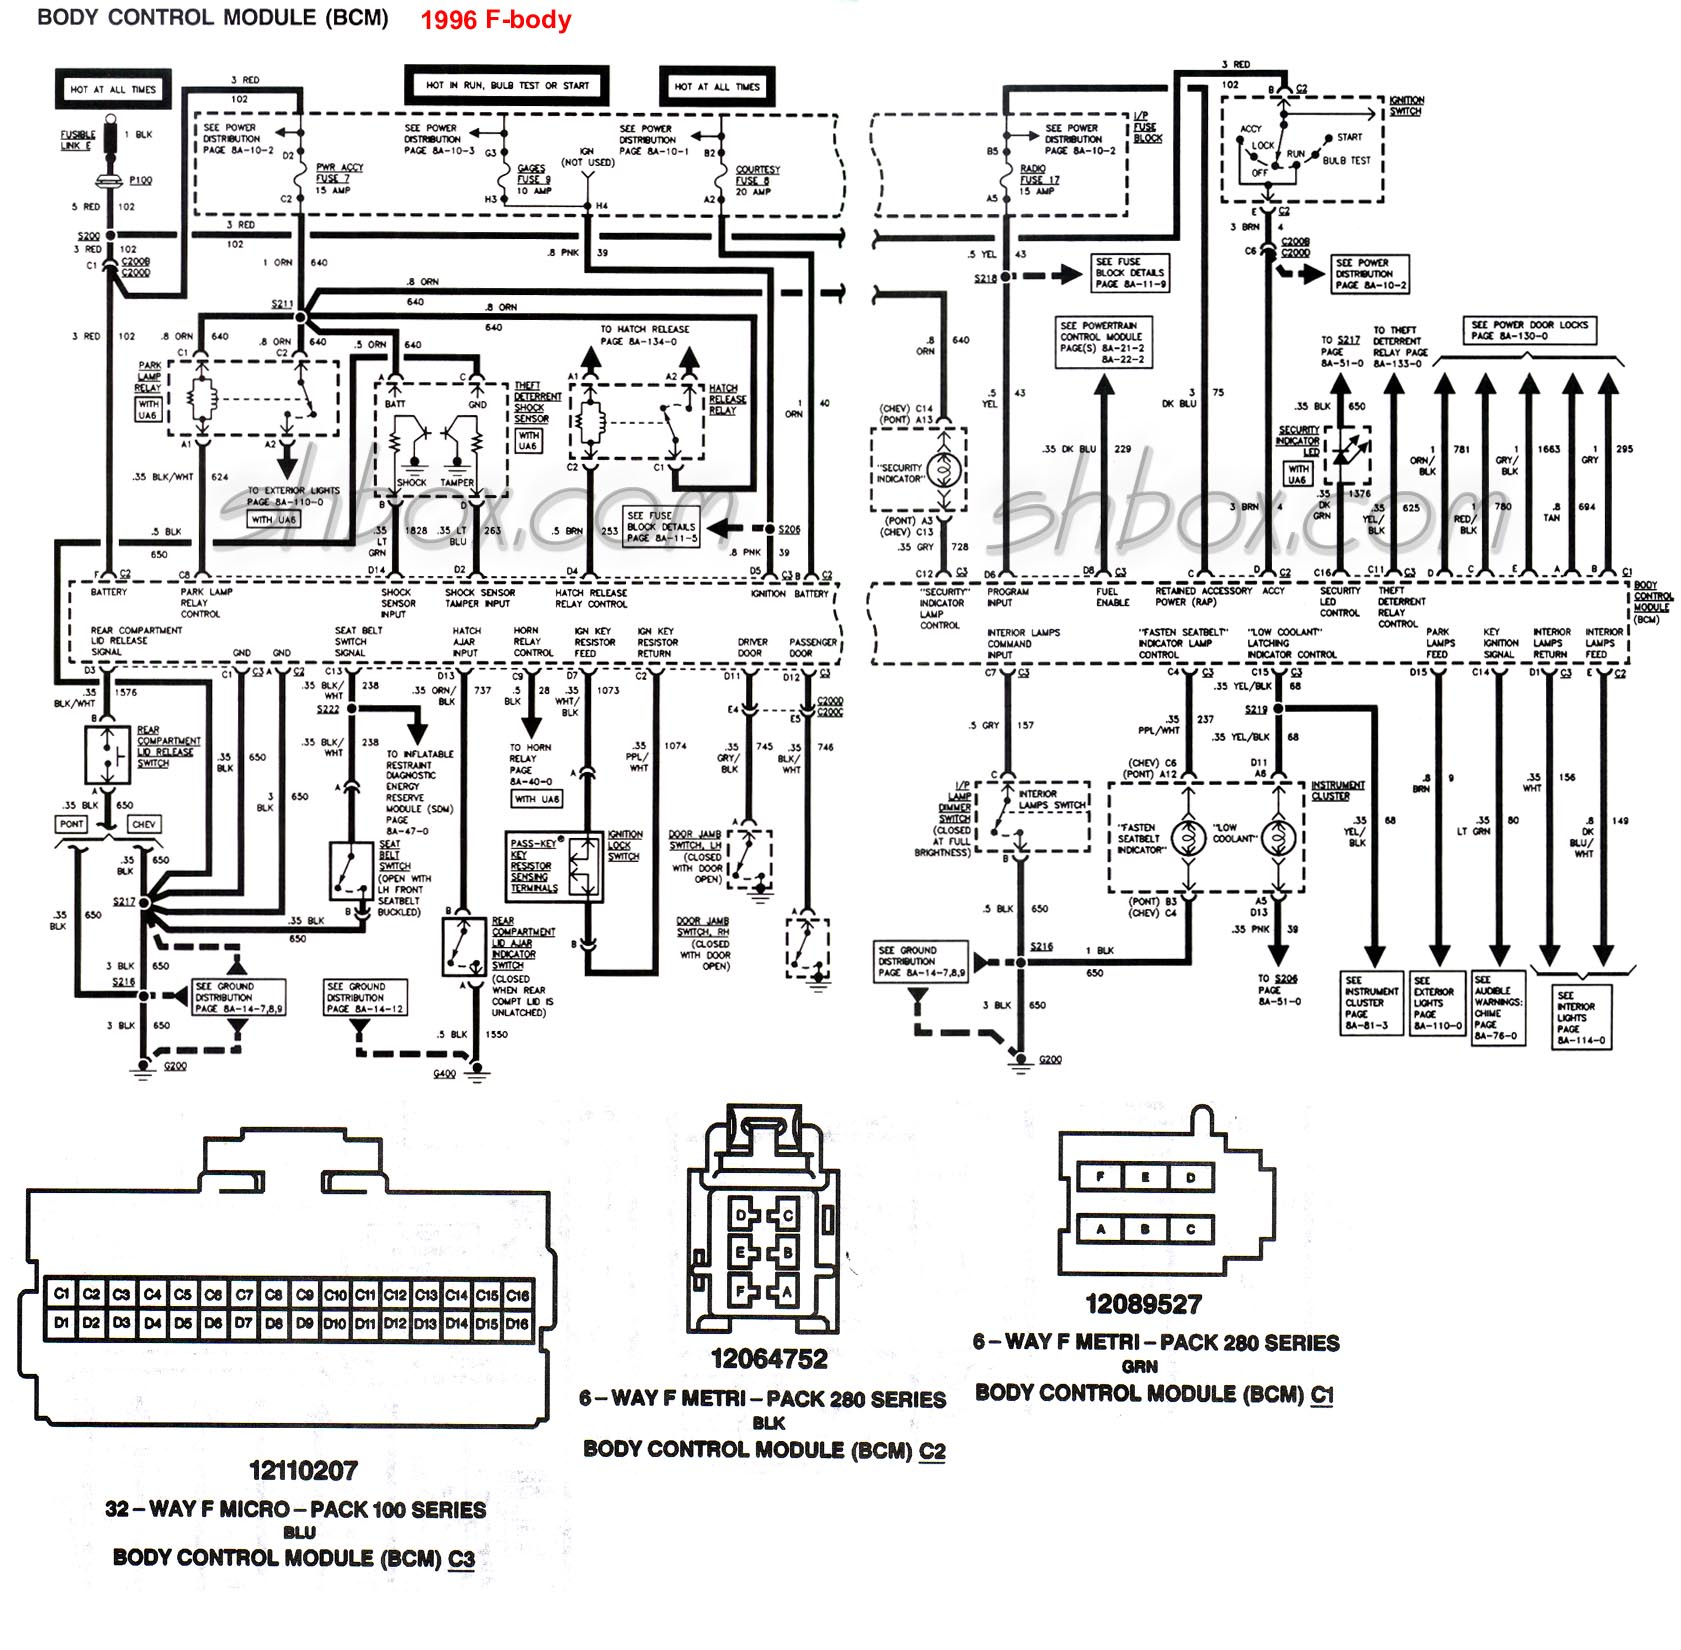 91 s10 wiring diagram ibanez 5 way switch 4th gen lt1 f body tech articles